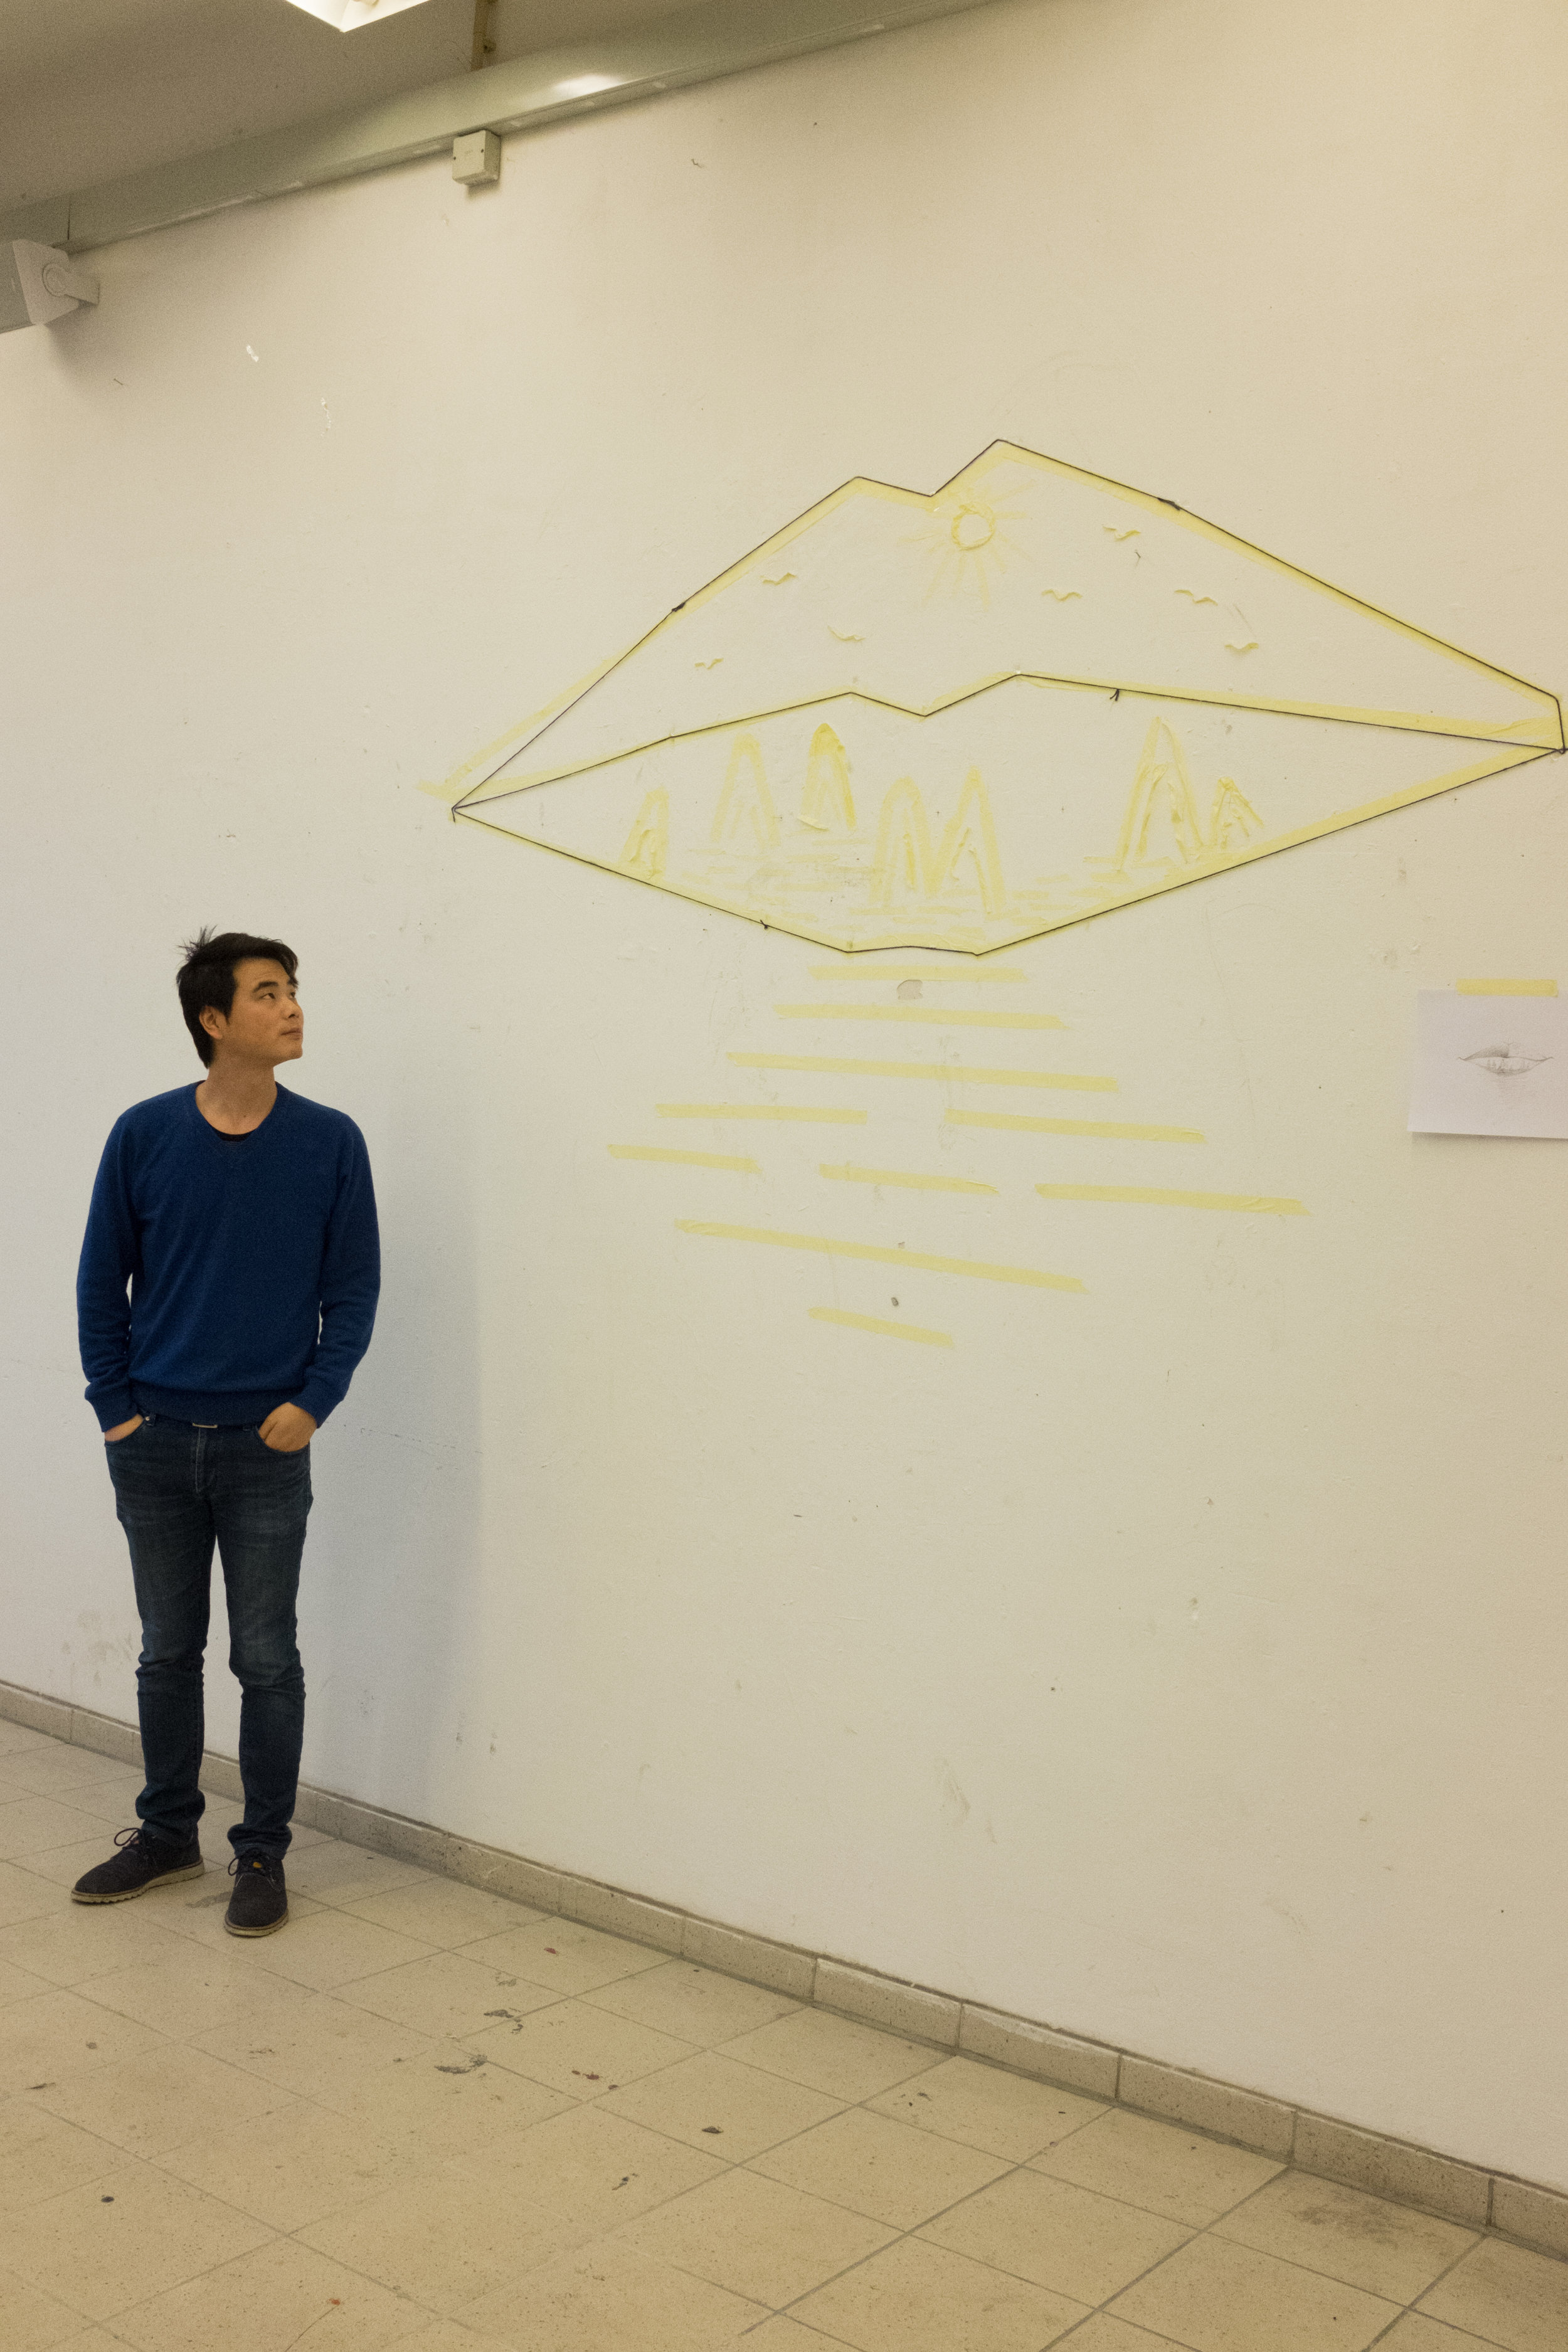 Wei and his work